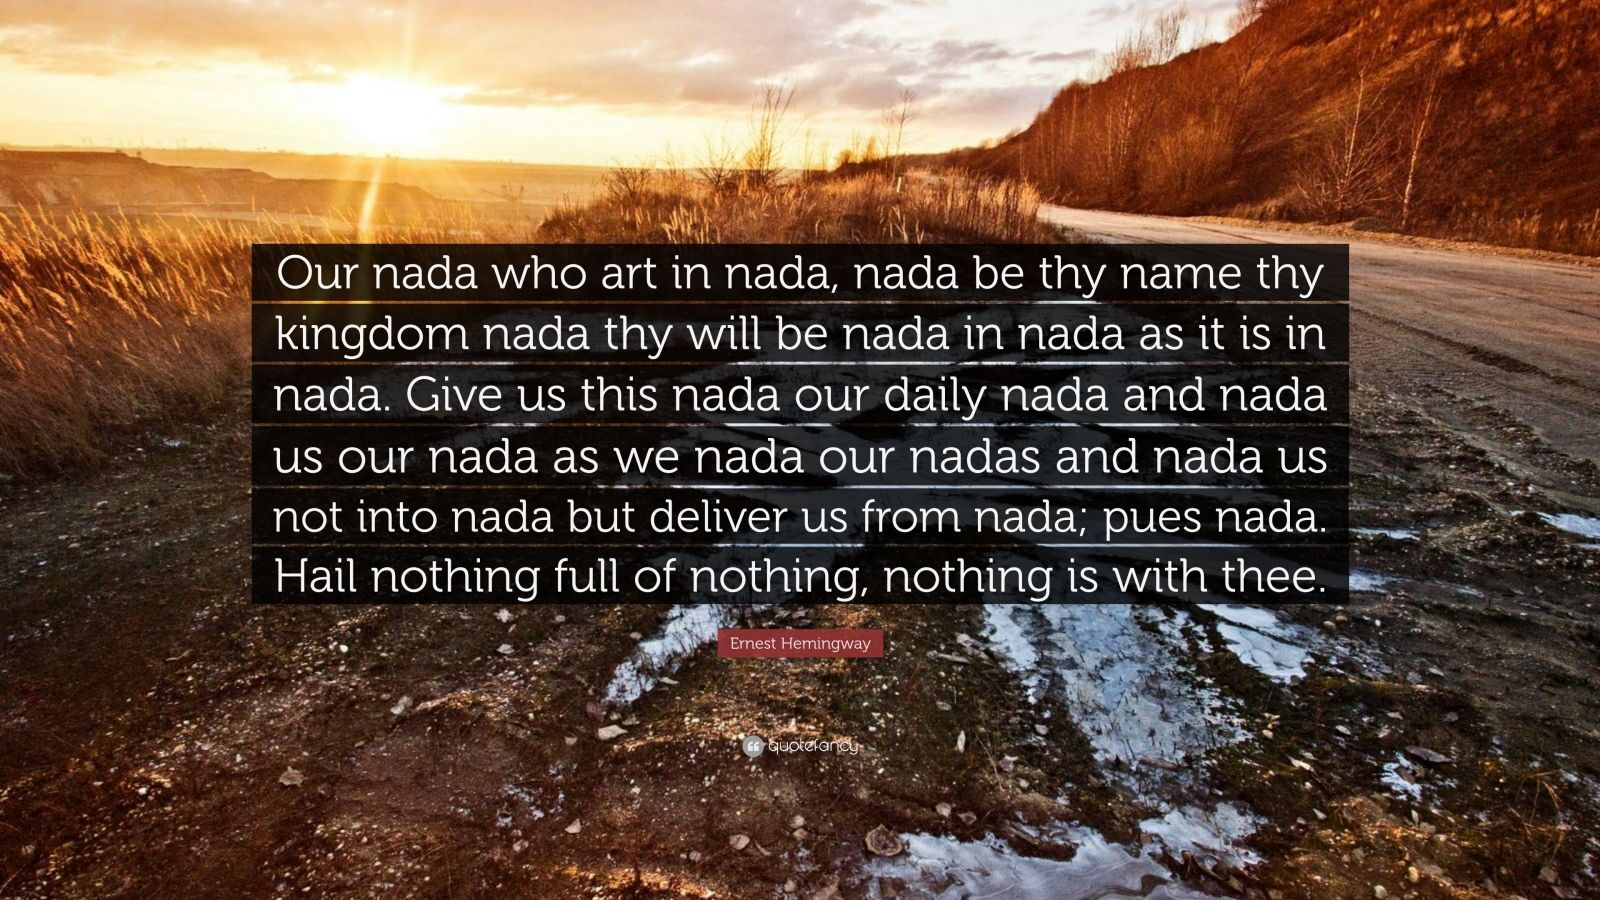 """Ernest Hemingway Quote: """"Our nada who art in nada, nada be thy name thy kingdom nada thy will be nada in nada as it is in nada. Give us this nada our daily nada and nada us our nada as we nada our nadas and nada us not into nada but deliver us from nada; pues nada. Hail nothing full of nothing, nothing is with thee."""""""